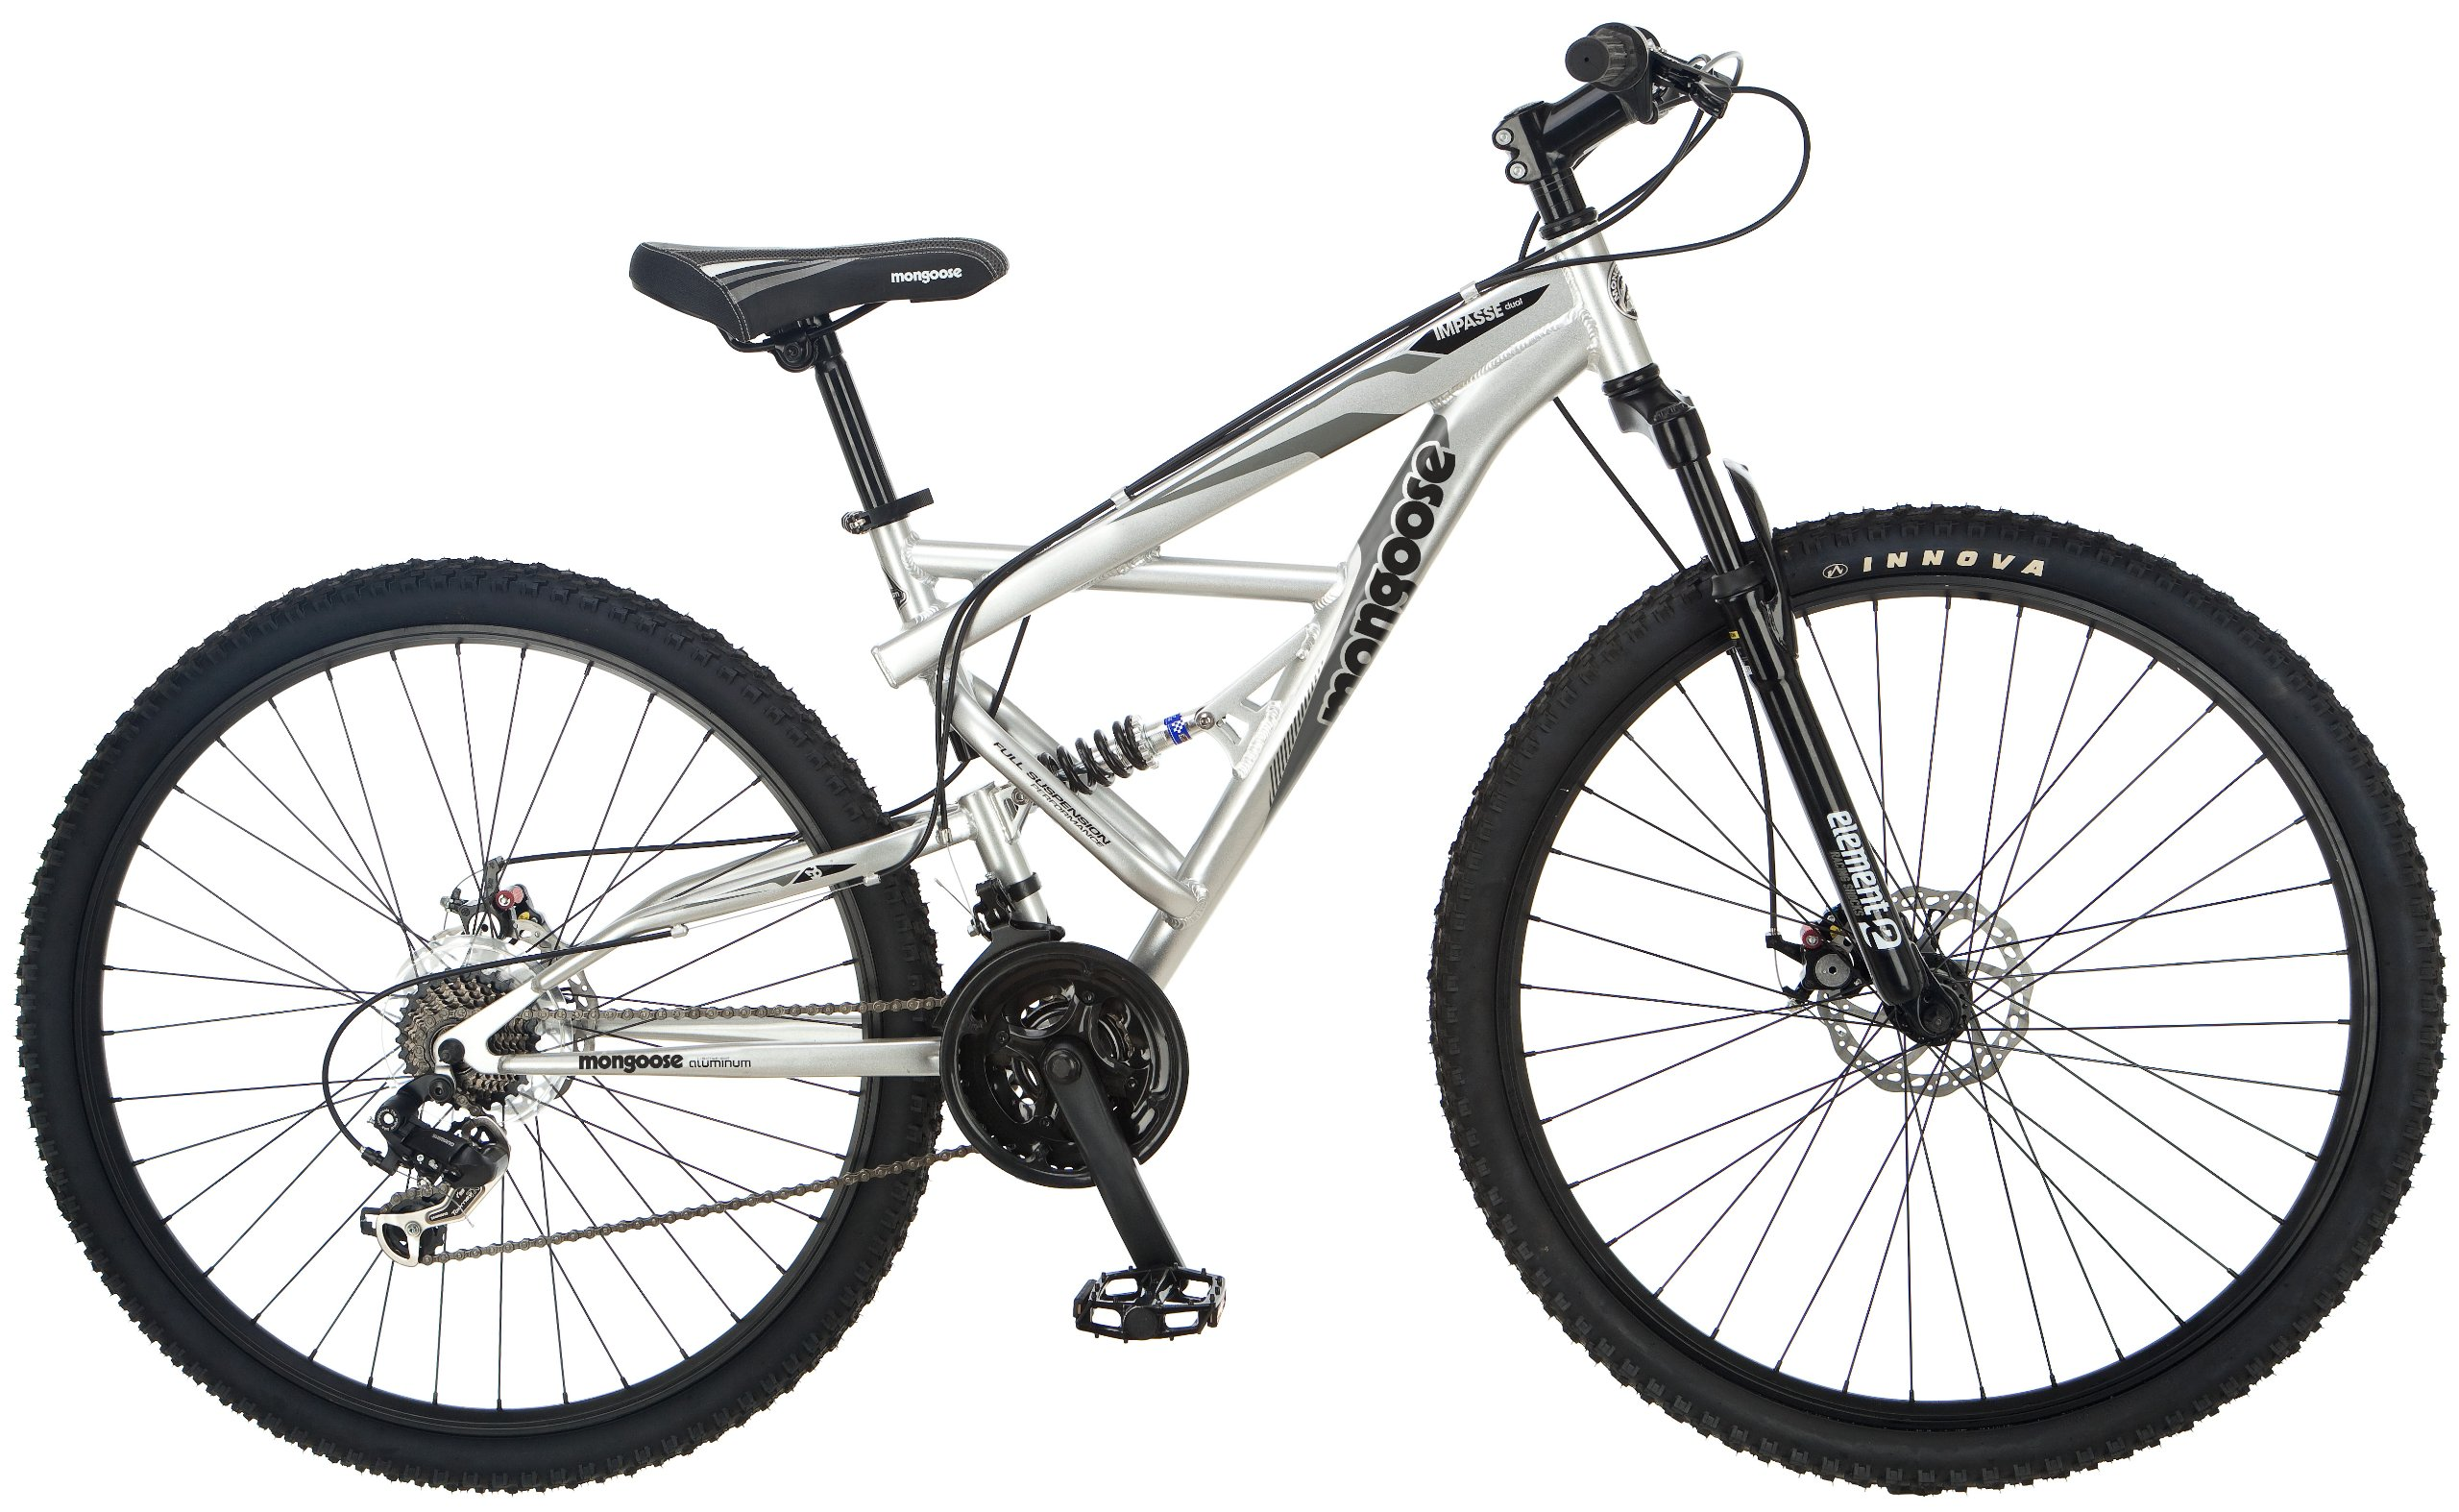 Mongoose Impasse Full Dual-Suspension Mountain Bike, Featuring 18-Inch/Medium Aluminum Frame and 29-Inch Wheels with Disc Brakes, Silver by Mongoose